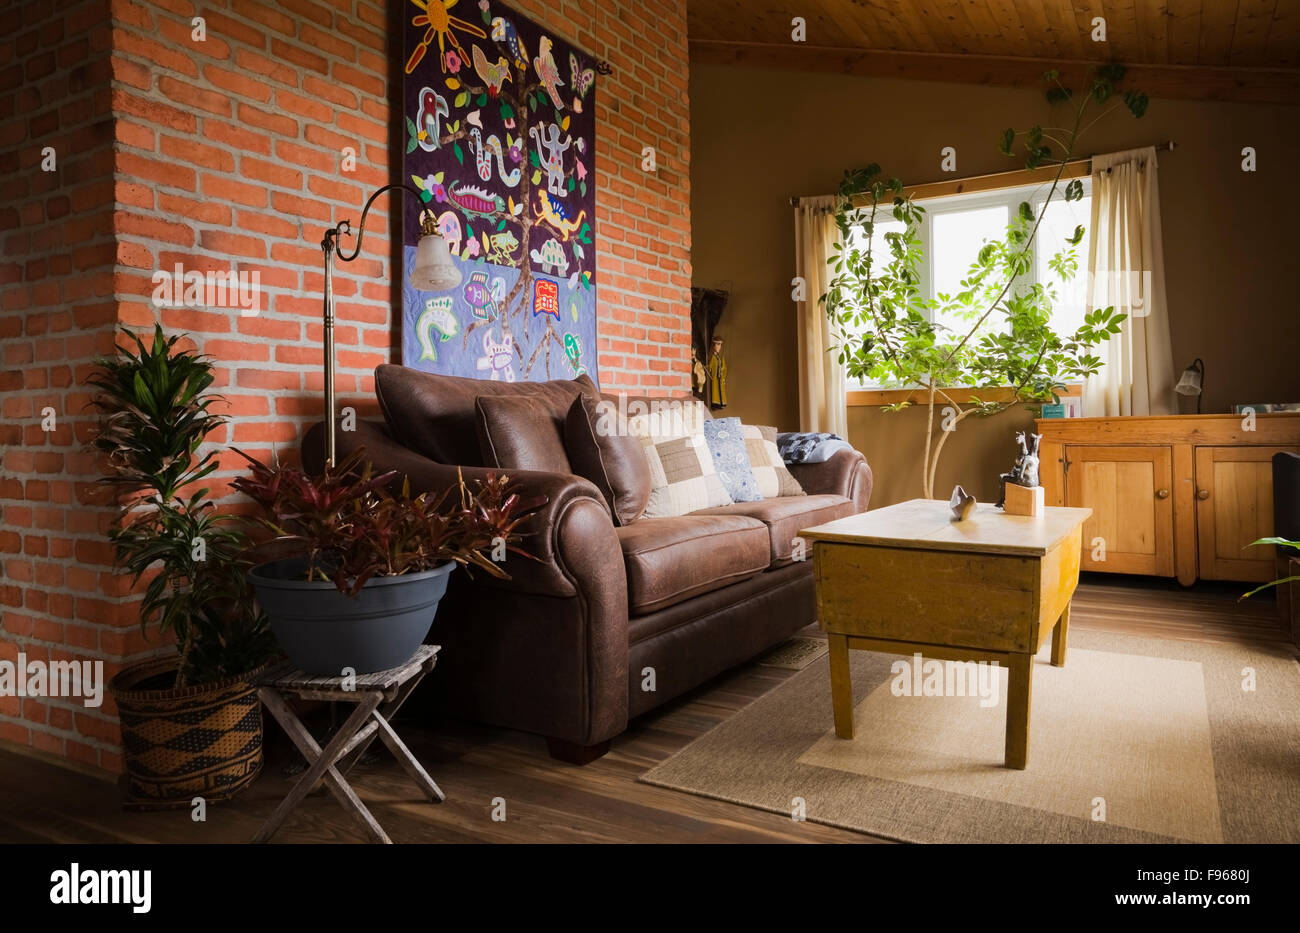 Brown Leather Sofa Against A Red Brick Wall And An Antique Wooden Table In Living Room On The Upstairs Floor Inside Country